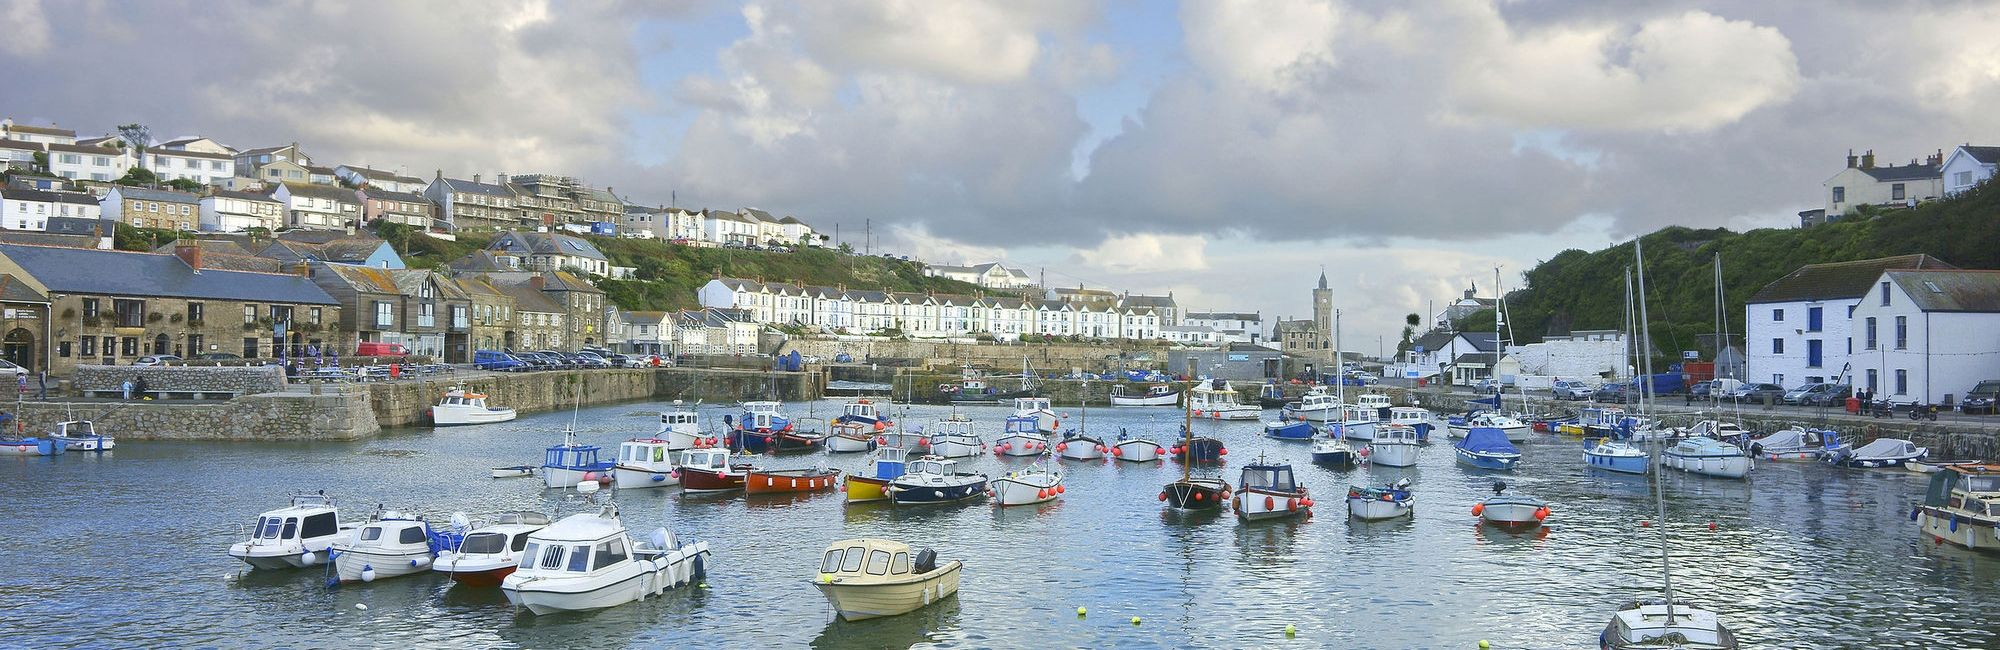 Porthleven early evening